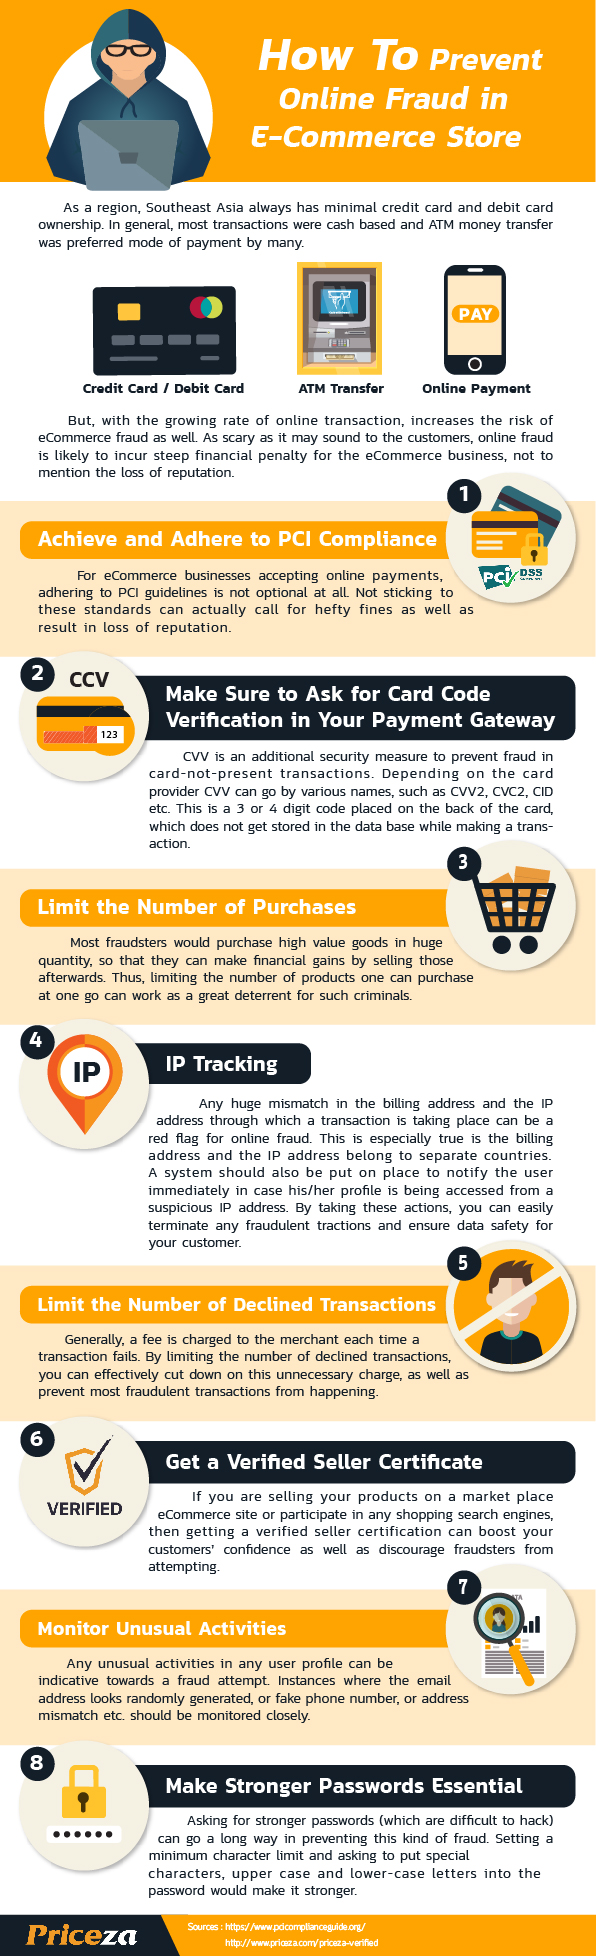 Infographic: Stop Online Fraud for your E-Commerce Store